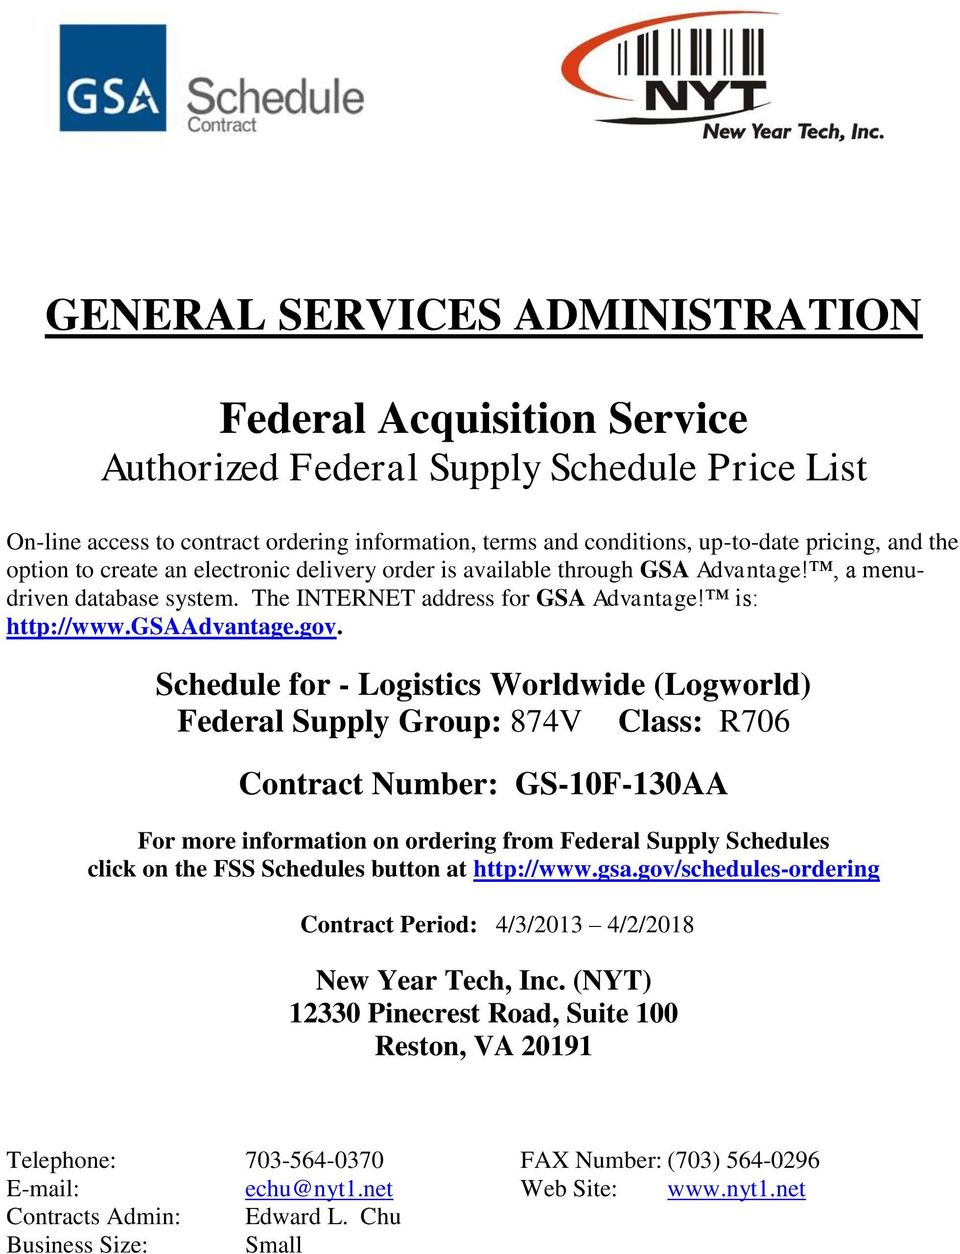 Schedule for - Logistics Worldwide (Logworld) Federal Supply Group: 874V Class: R706 Contract Number: GS-10F-130AA For more information on ordering from Federal Supply Schedules click on the FSS